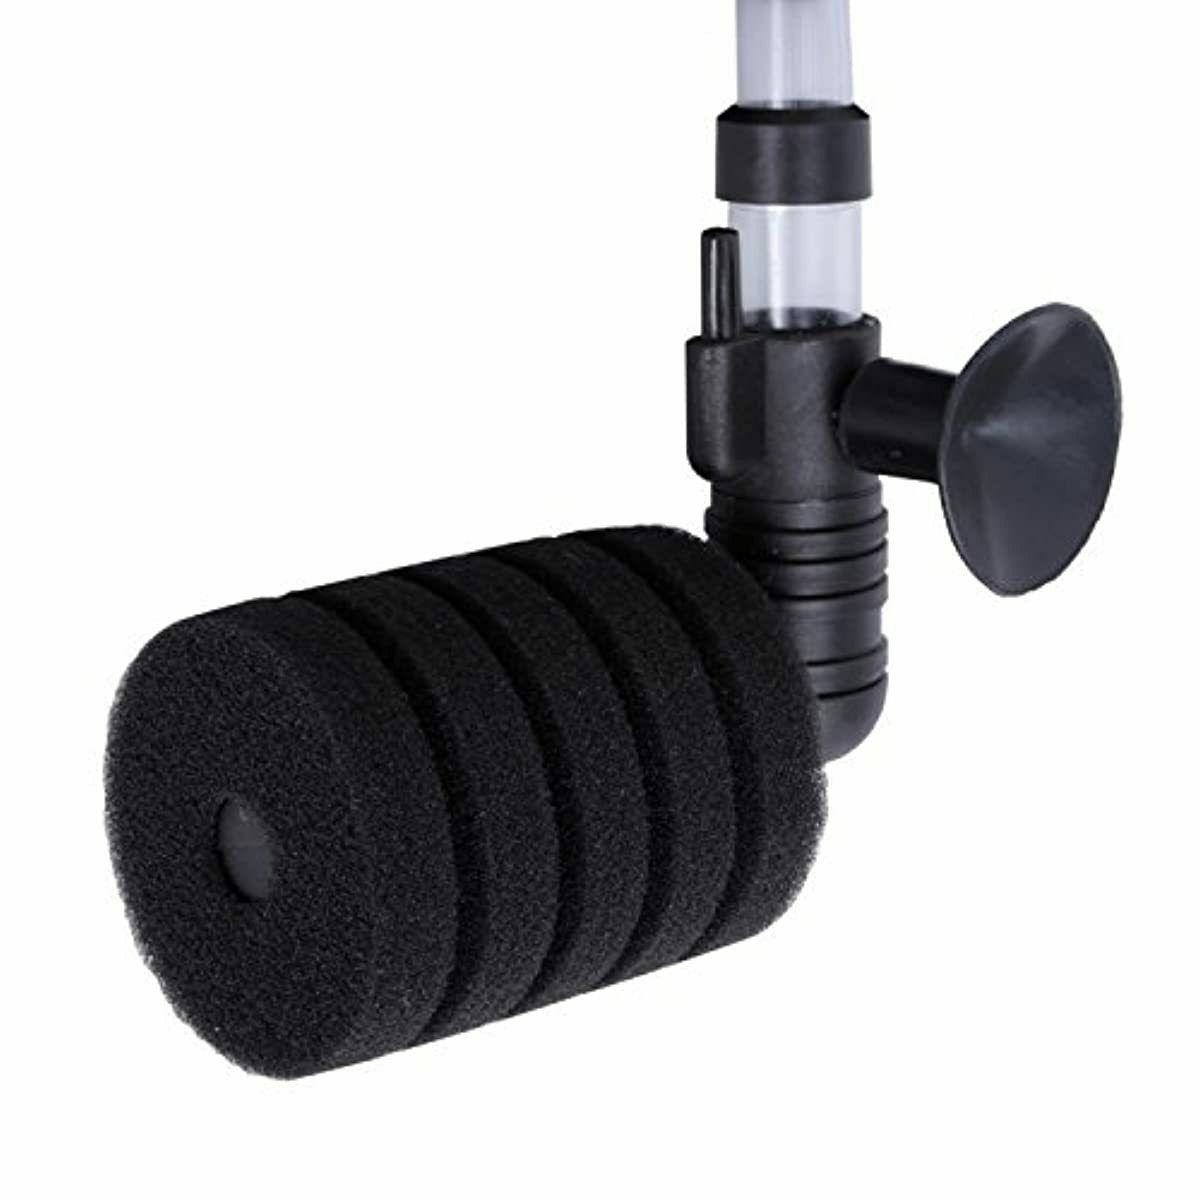 Air Pump Sponge for Fish Up to 5 Gallo